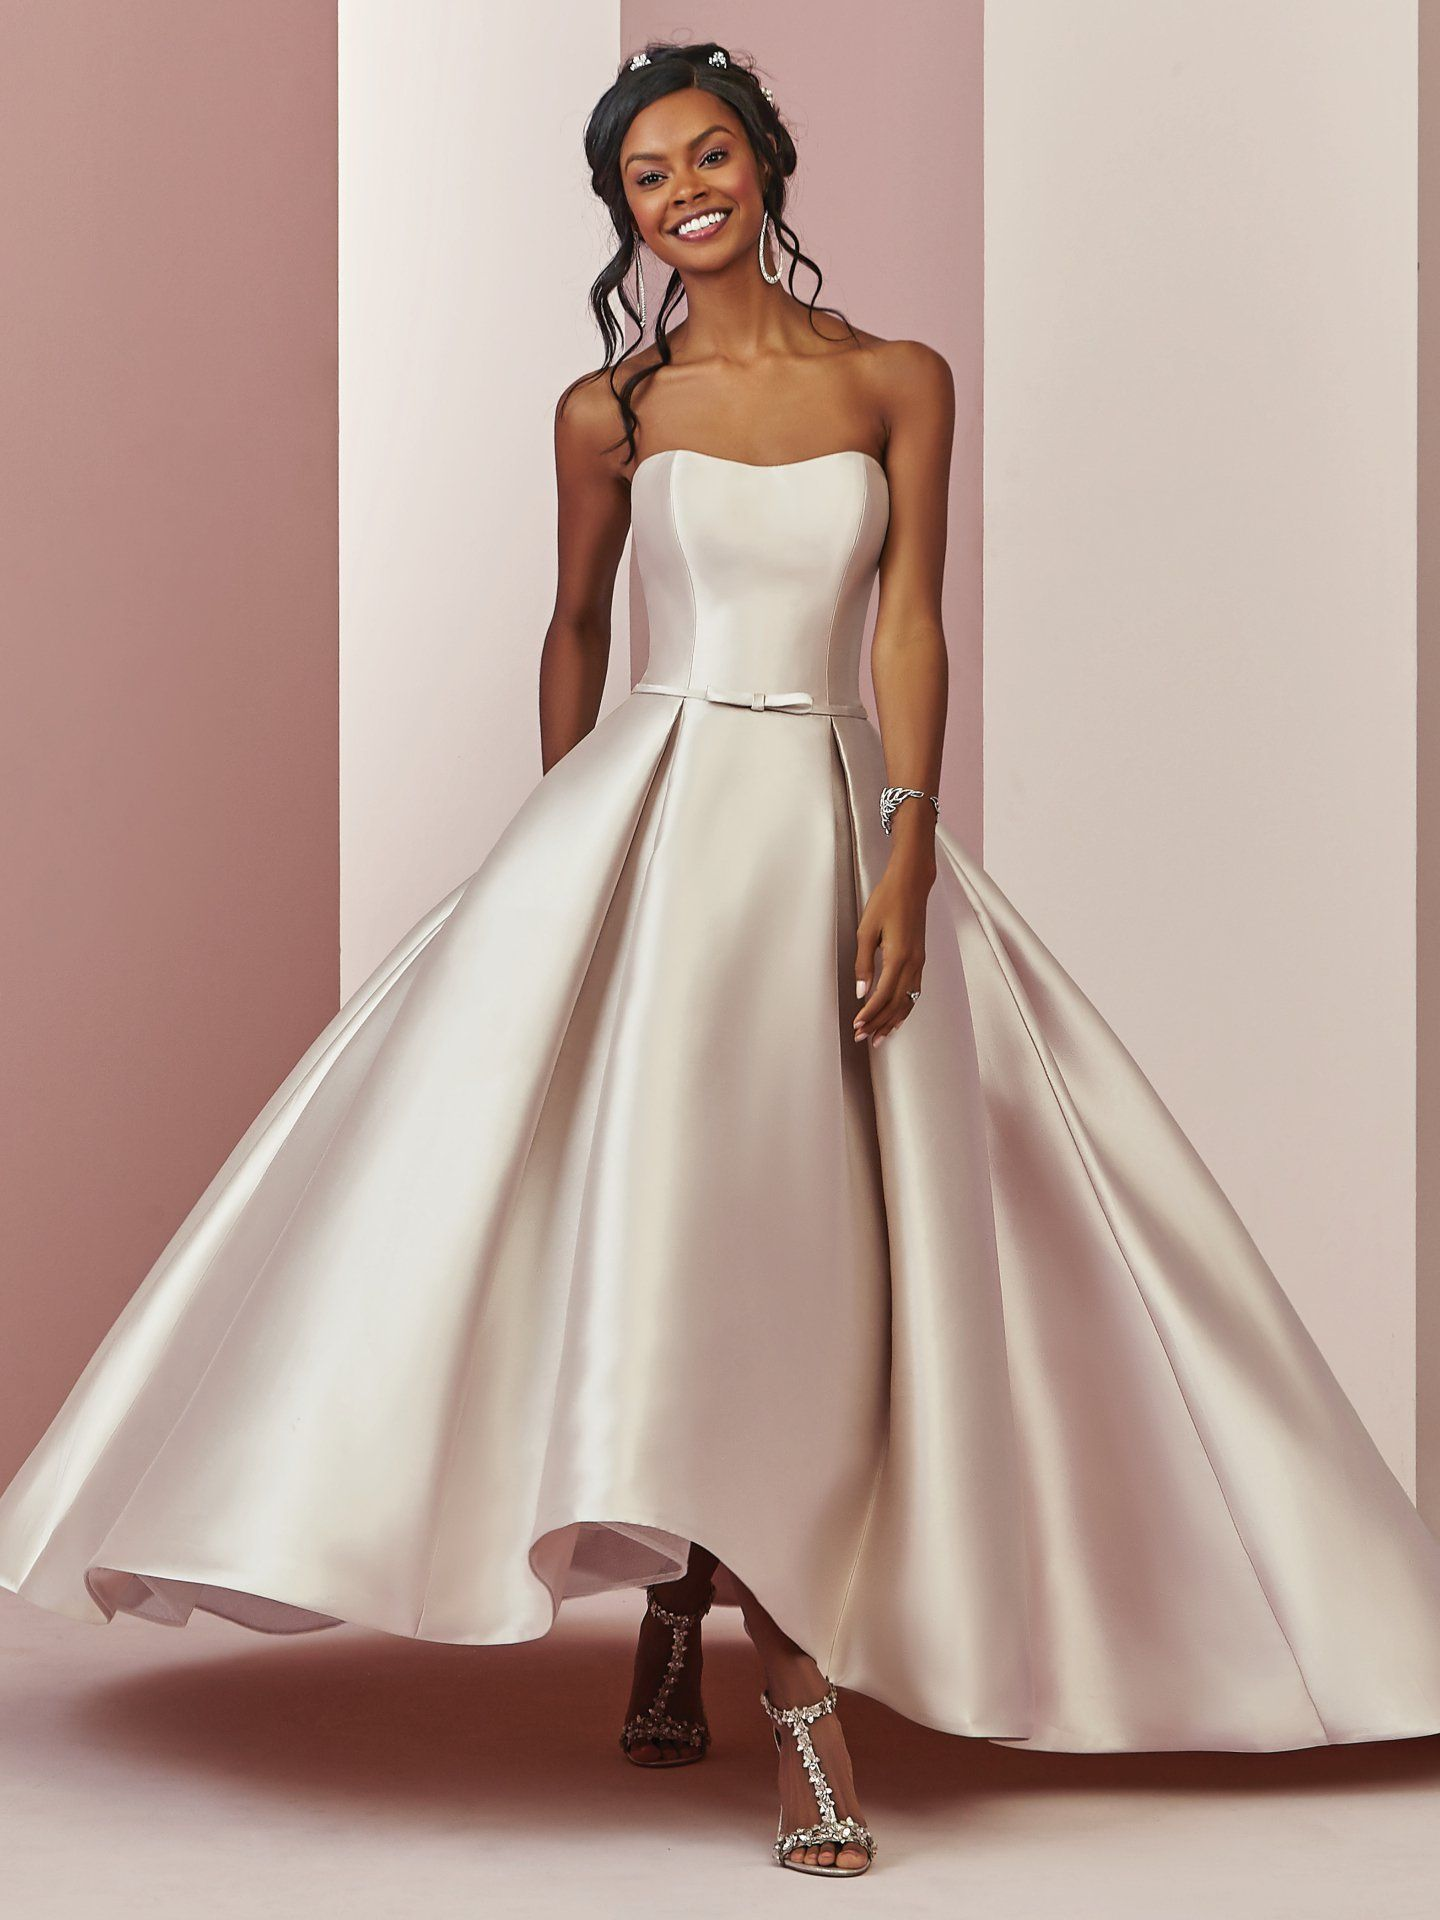 Dramatic with timeless inspiration wedding gown gallery